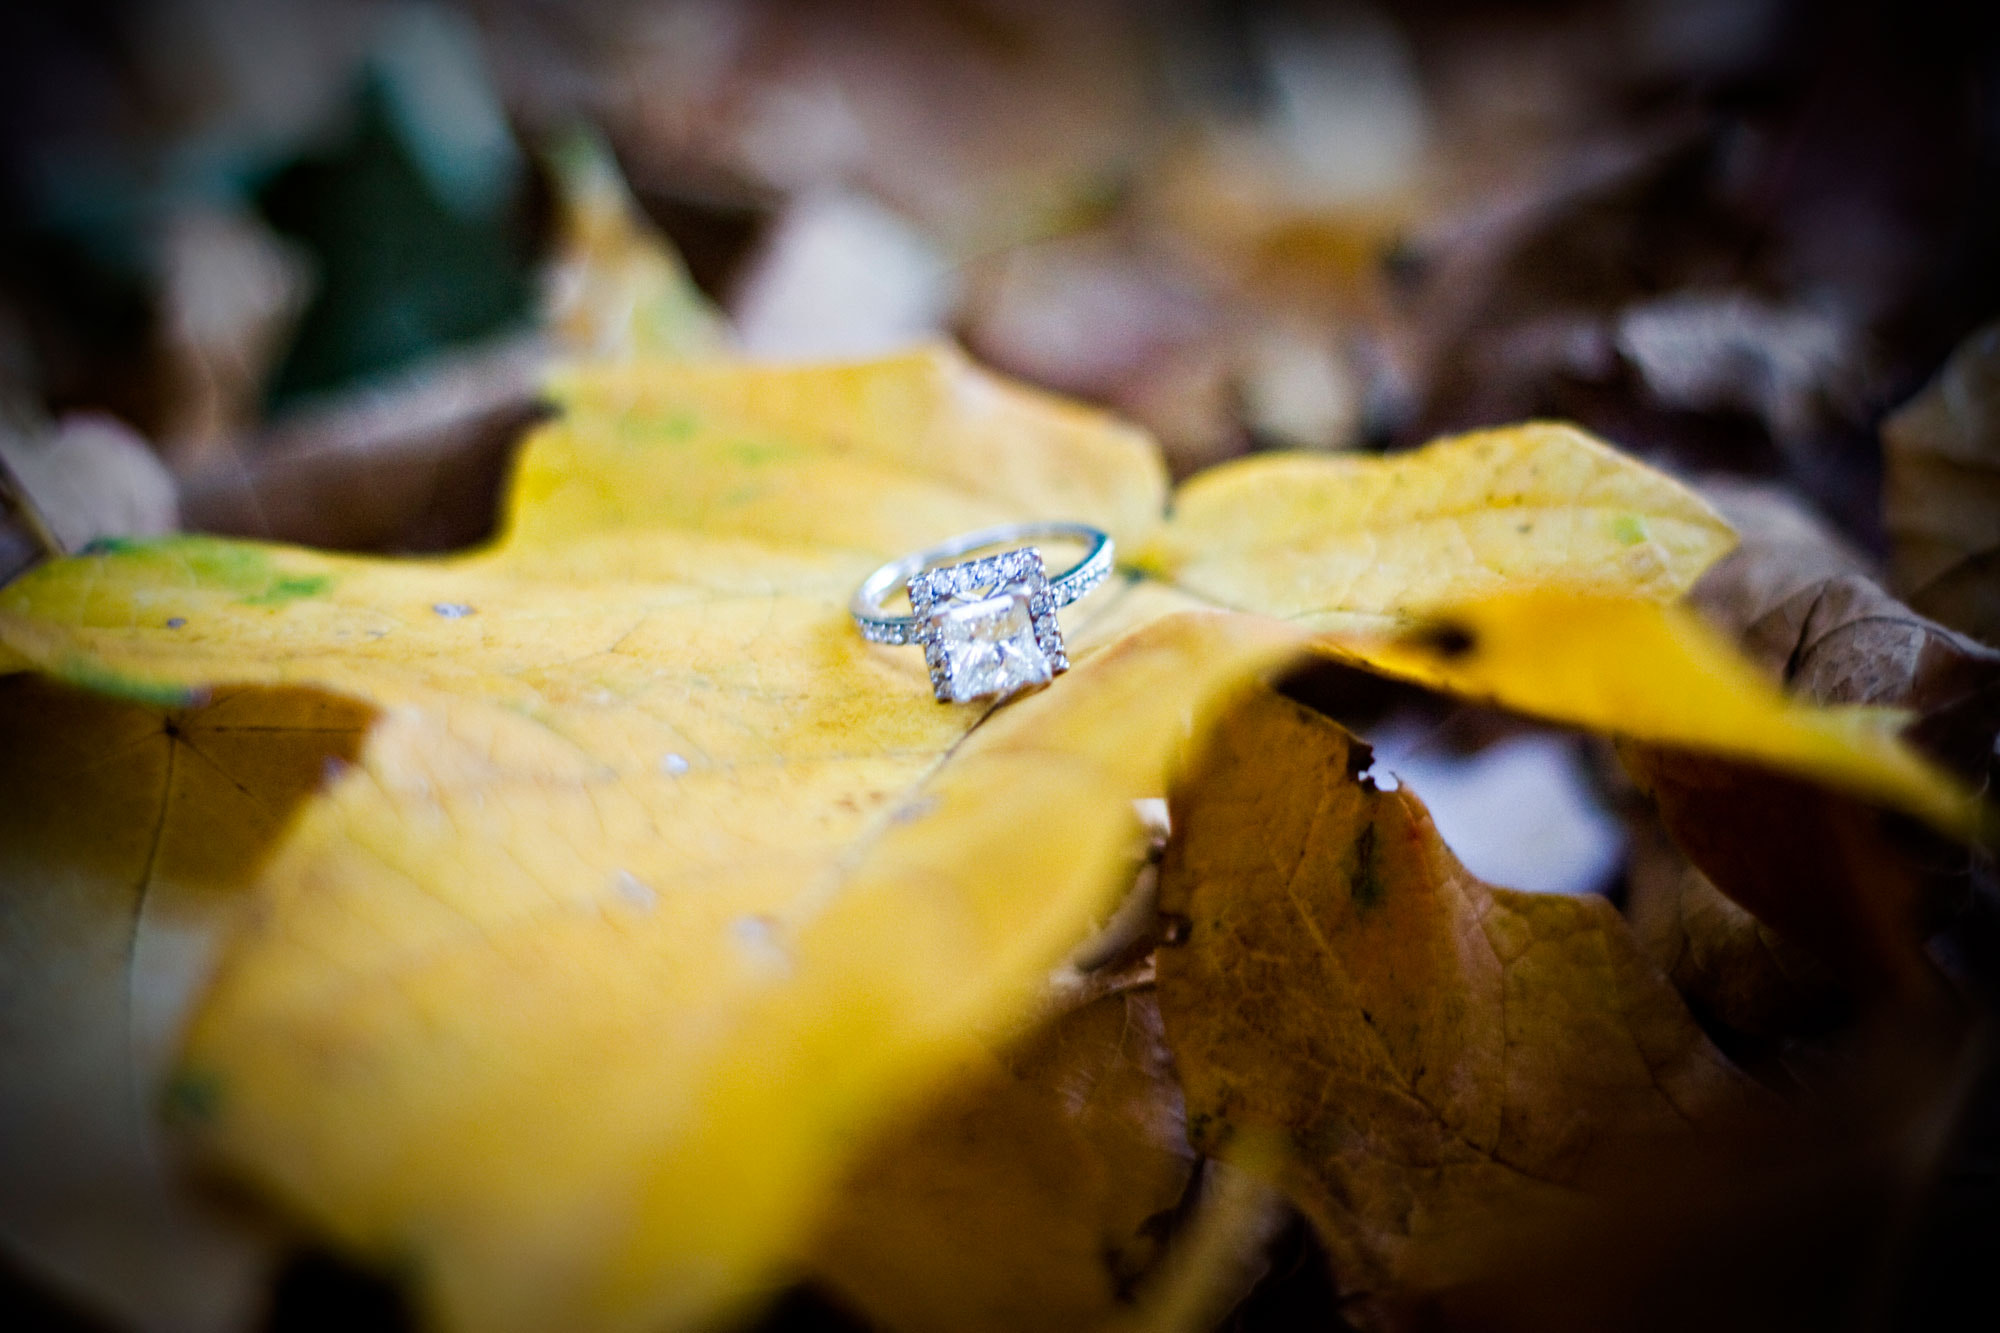 Photograph FALLing in love by Megan Hurt on 500px